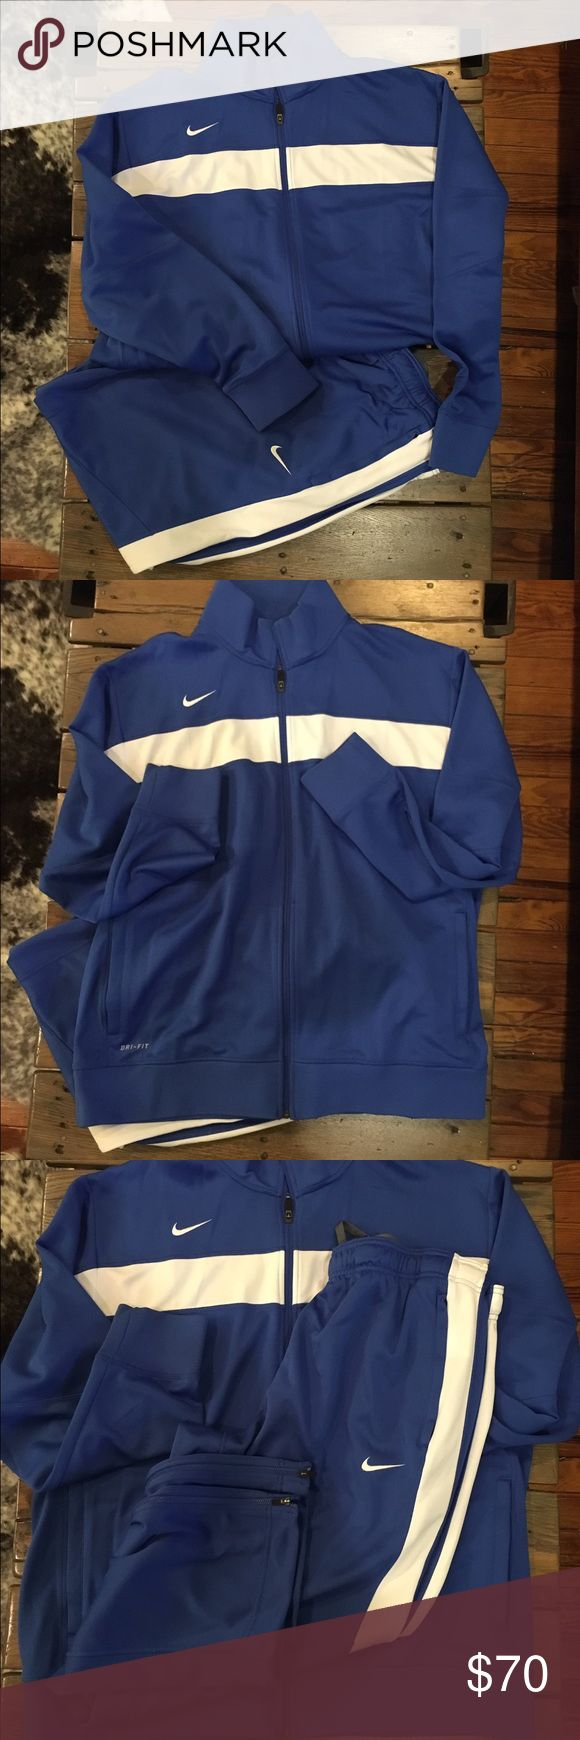 Blue & White Nike sweatsuit Dri-Fit Nike sweat suit. Excellent like new condition worn once. Hubby lost weight and no longer can wear.  This listing is for both pieces. Nike Other